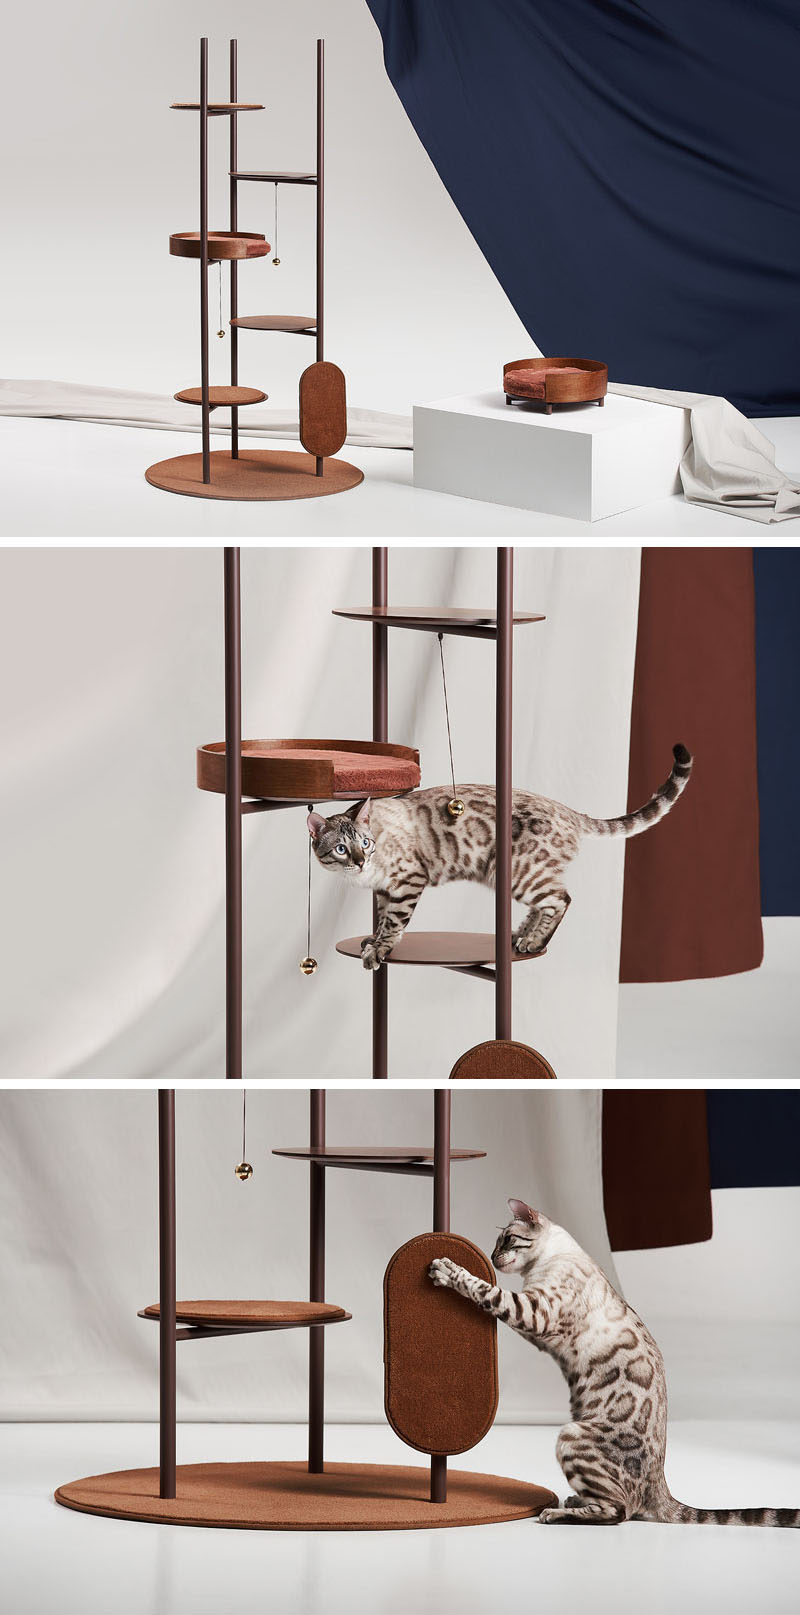 Jiyoun Kim Studio presents the 'Three Poles Collection', a modern cat tower that has multiple places for cats to play or relax. #CatTower #Cats #PetFurniture